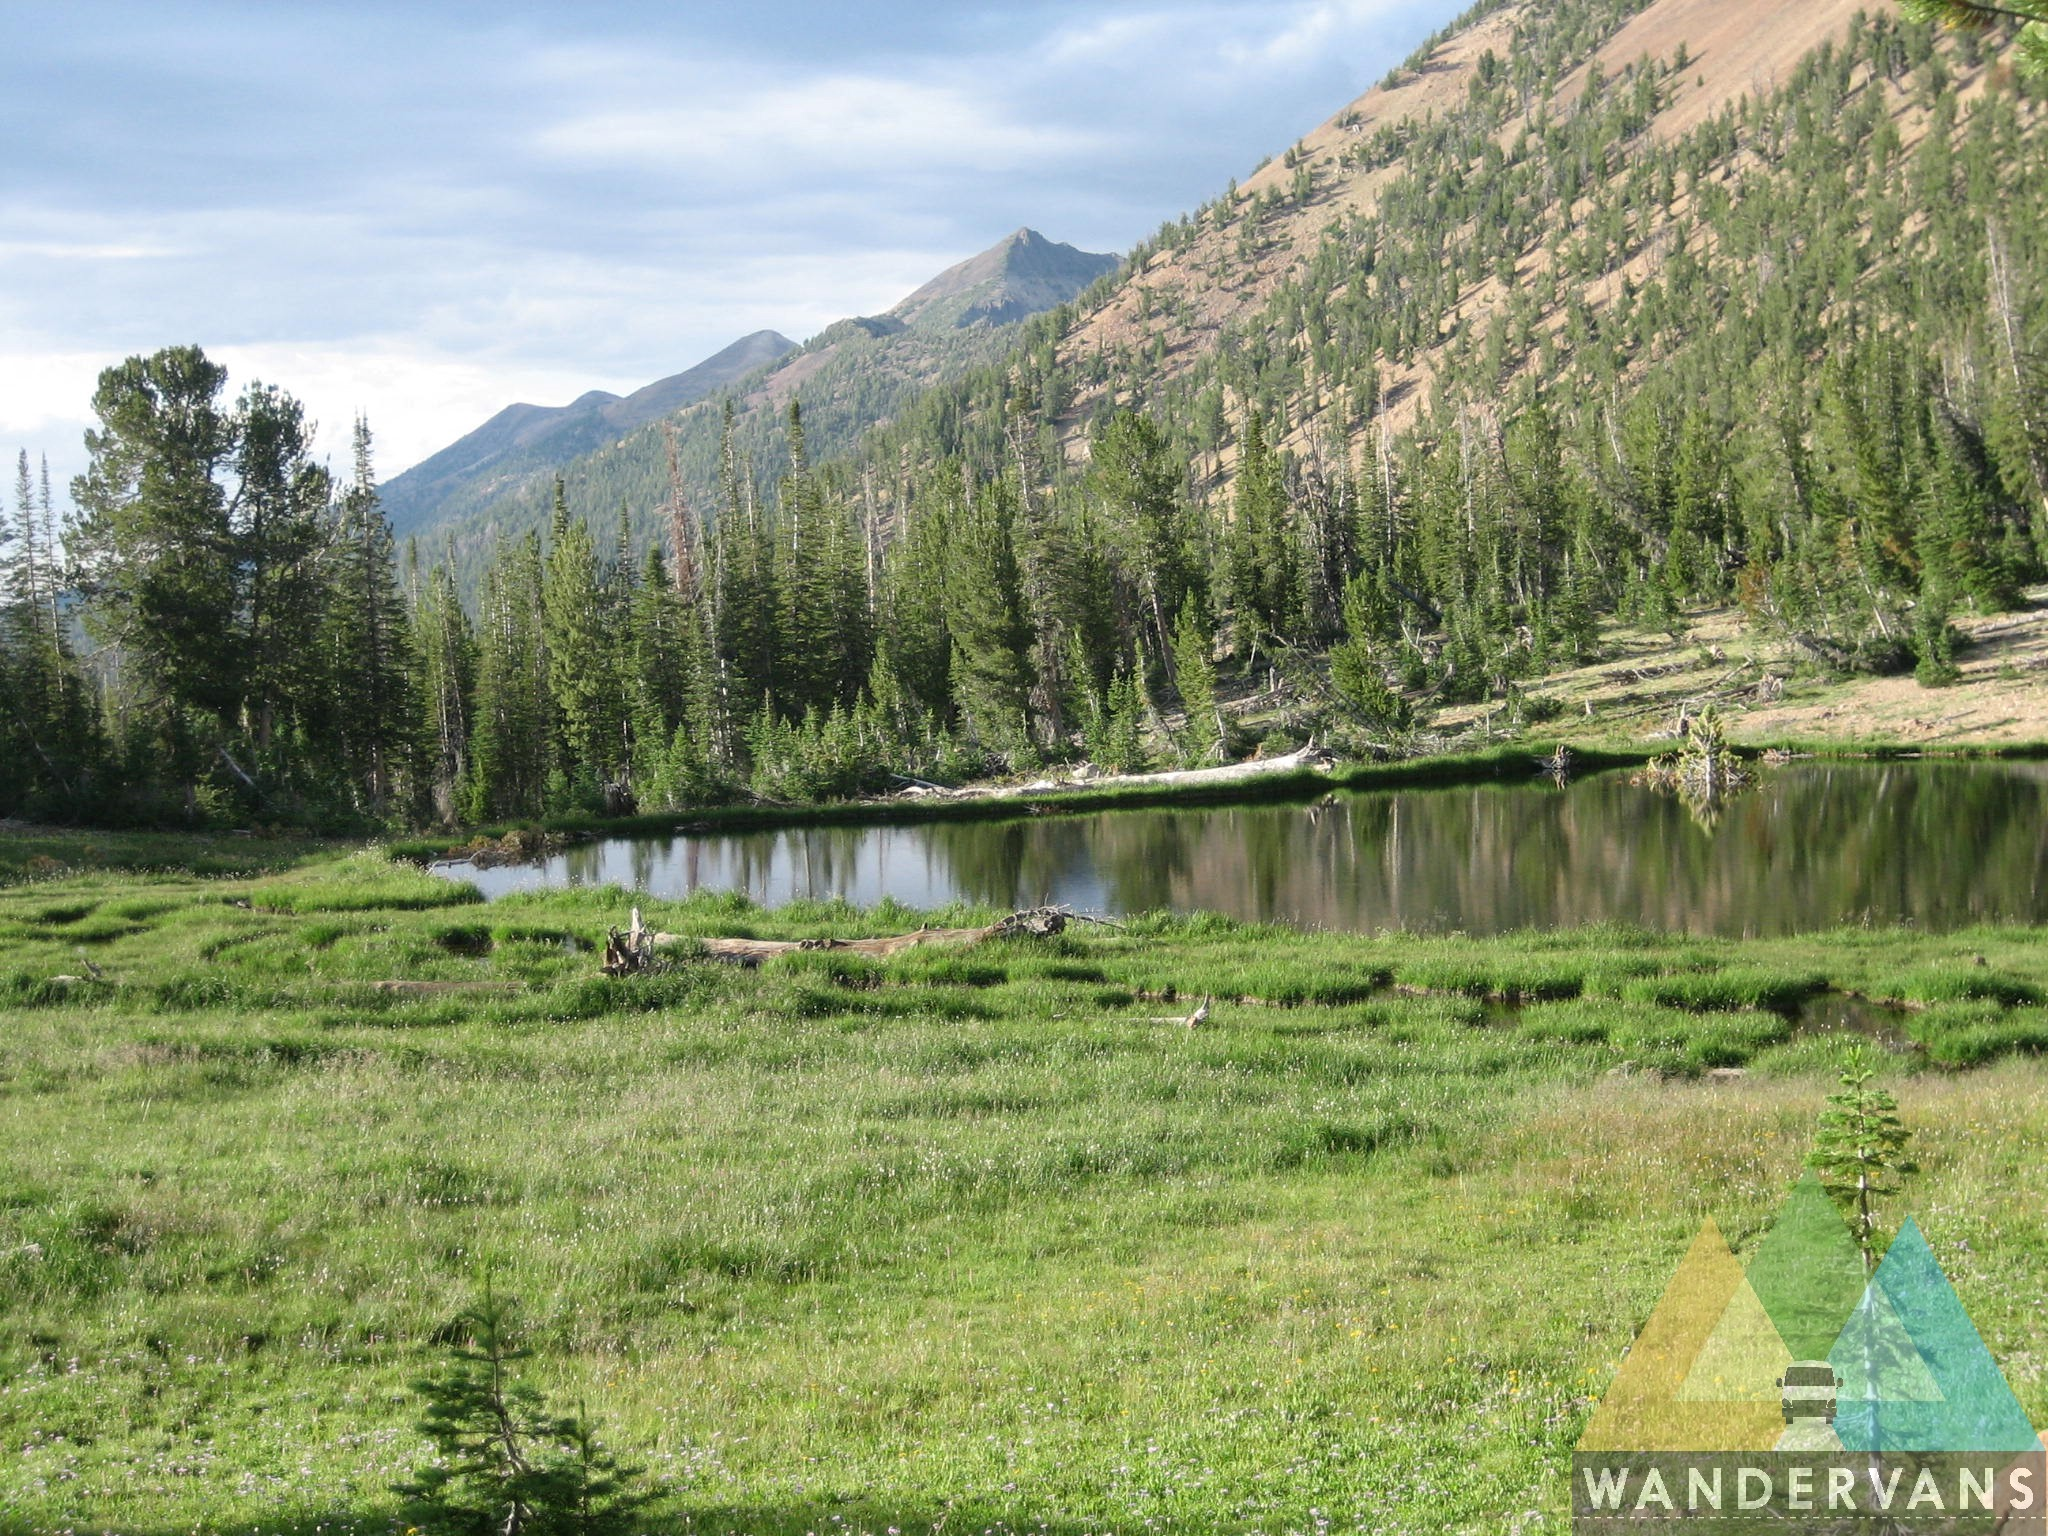 vanlife-rv-campervan-rent-idaho-sun-valley-boise-wandervans-wanderlust-skiing-backcountry-snowboard-sawtooth-jarbridge-mountains-nevada